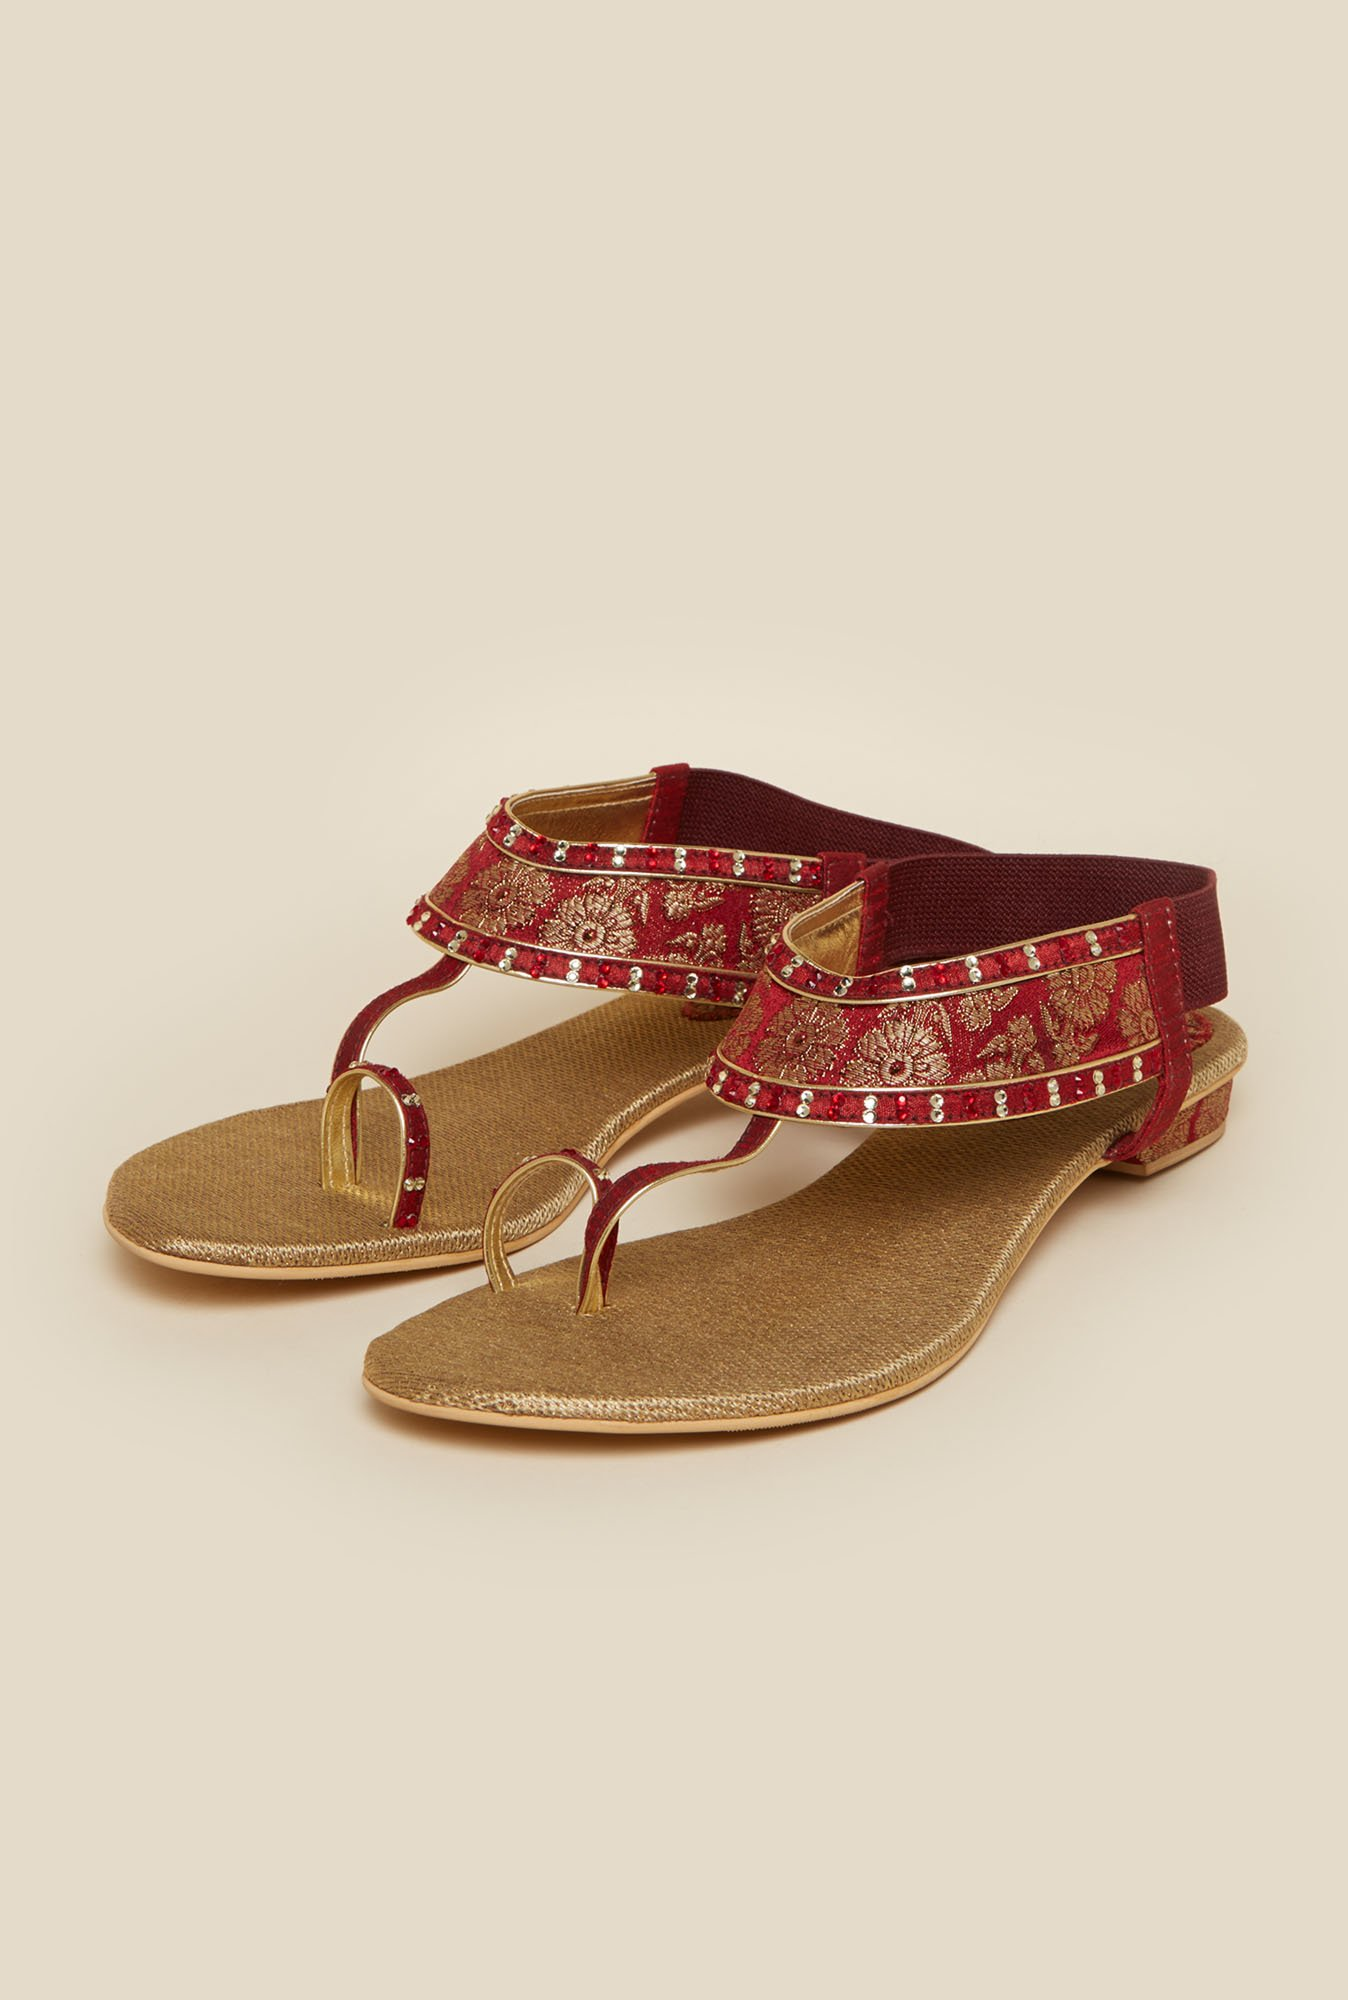 Metro Maroon Toe Ring Sandals